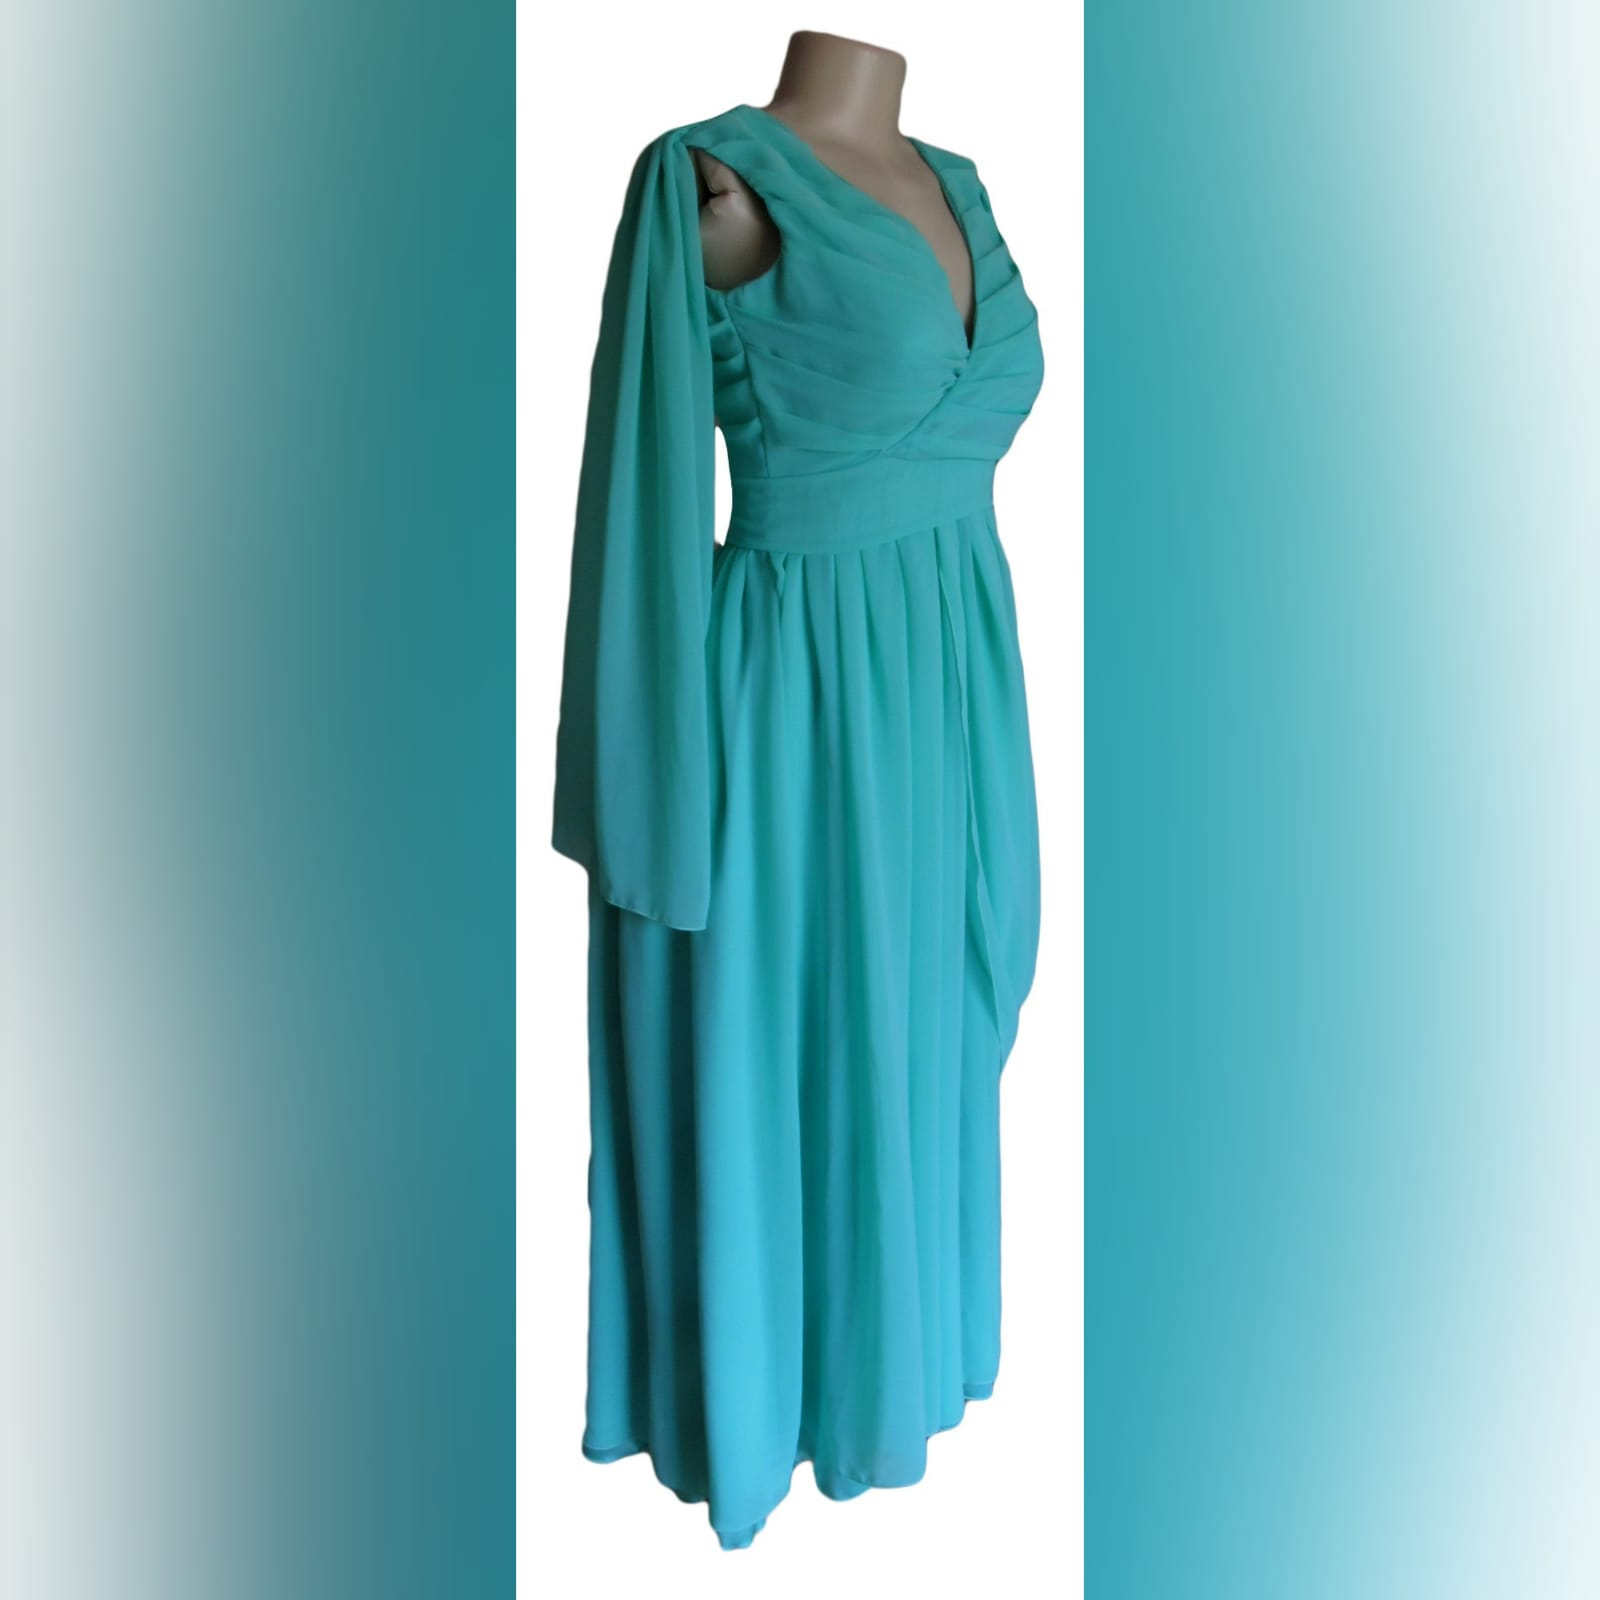 Mint green, long draped mother of the brides dress 1 mint green, long draped mother of the brides dress. With a crossed bust v neckline. Shoulder and hip draping detail.